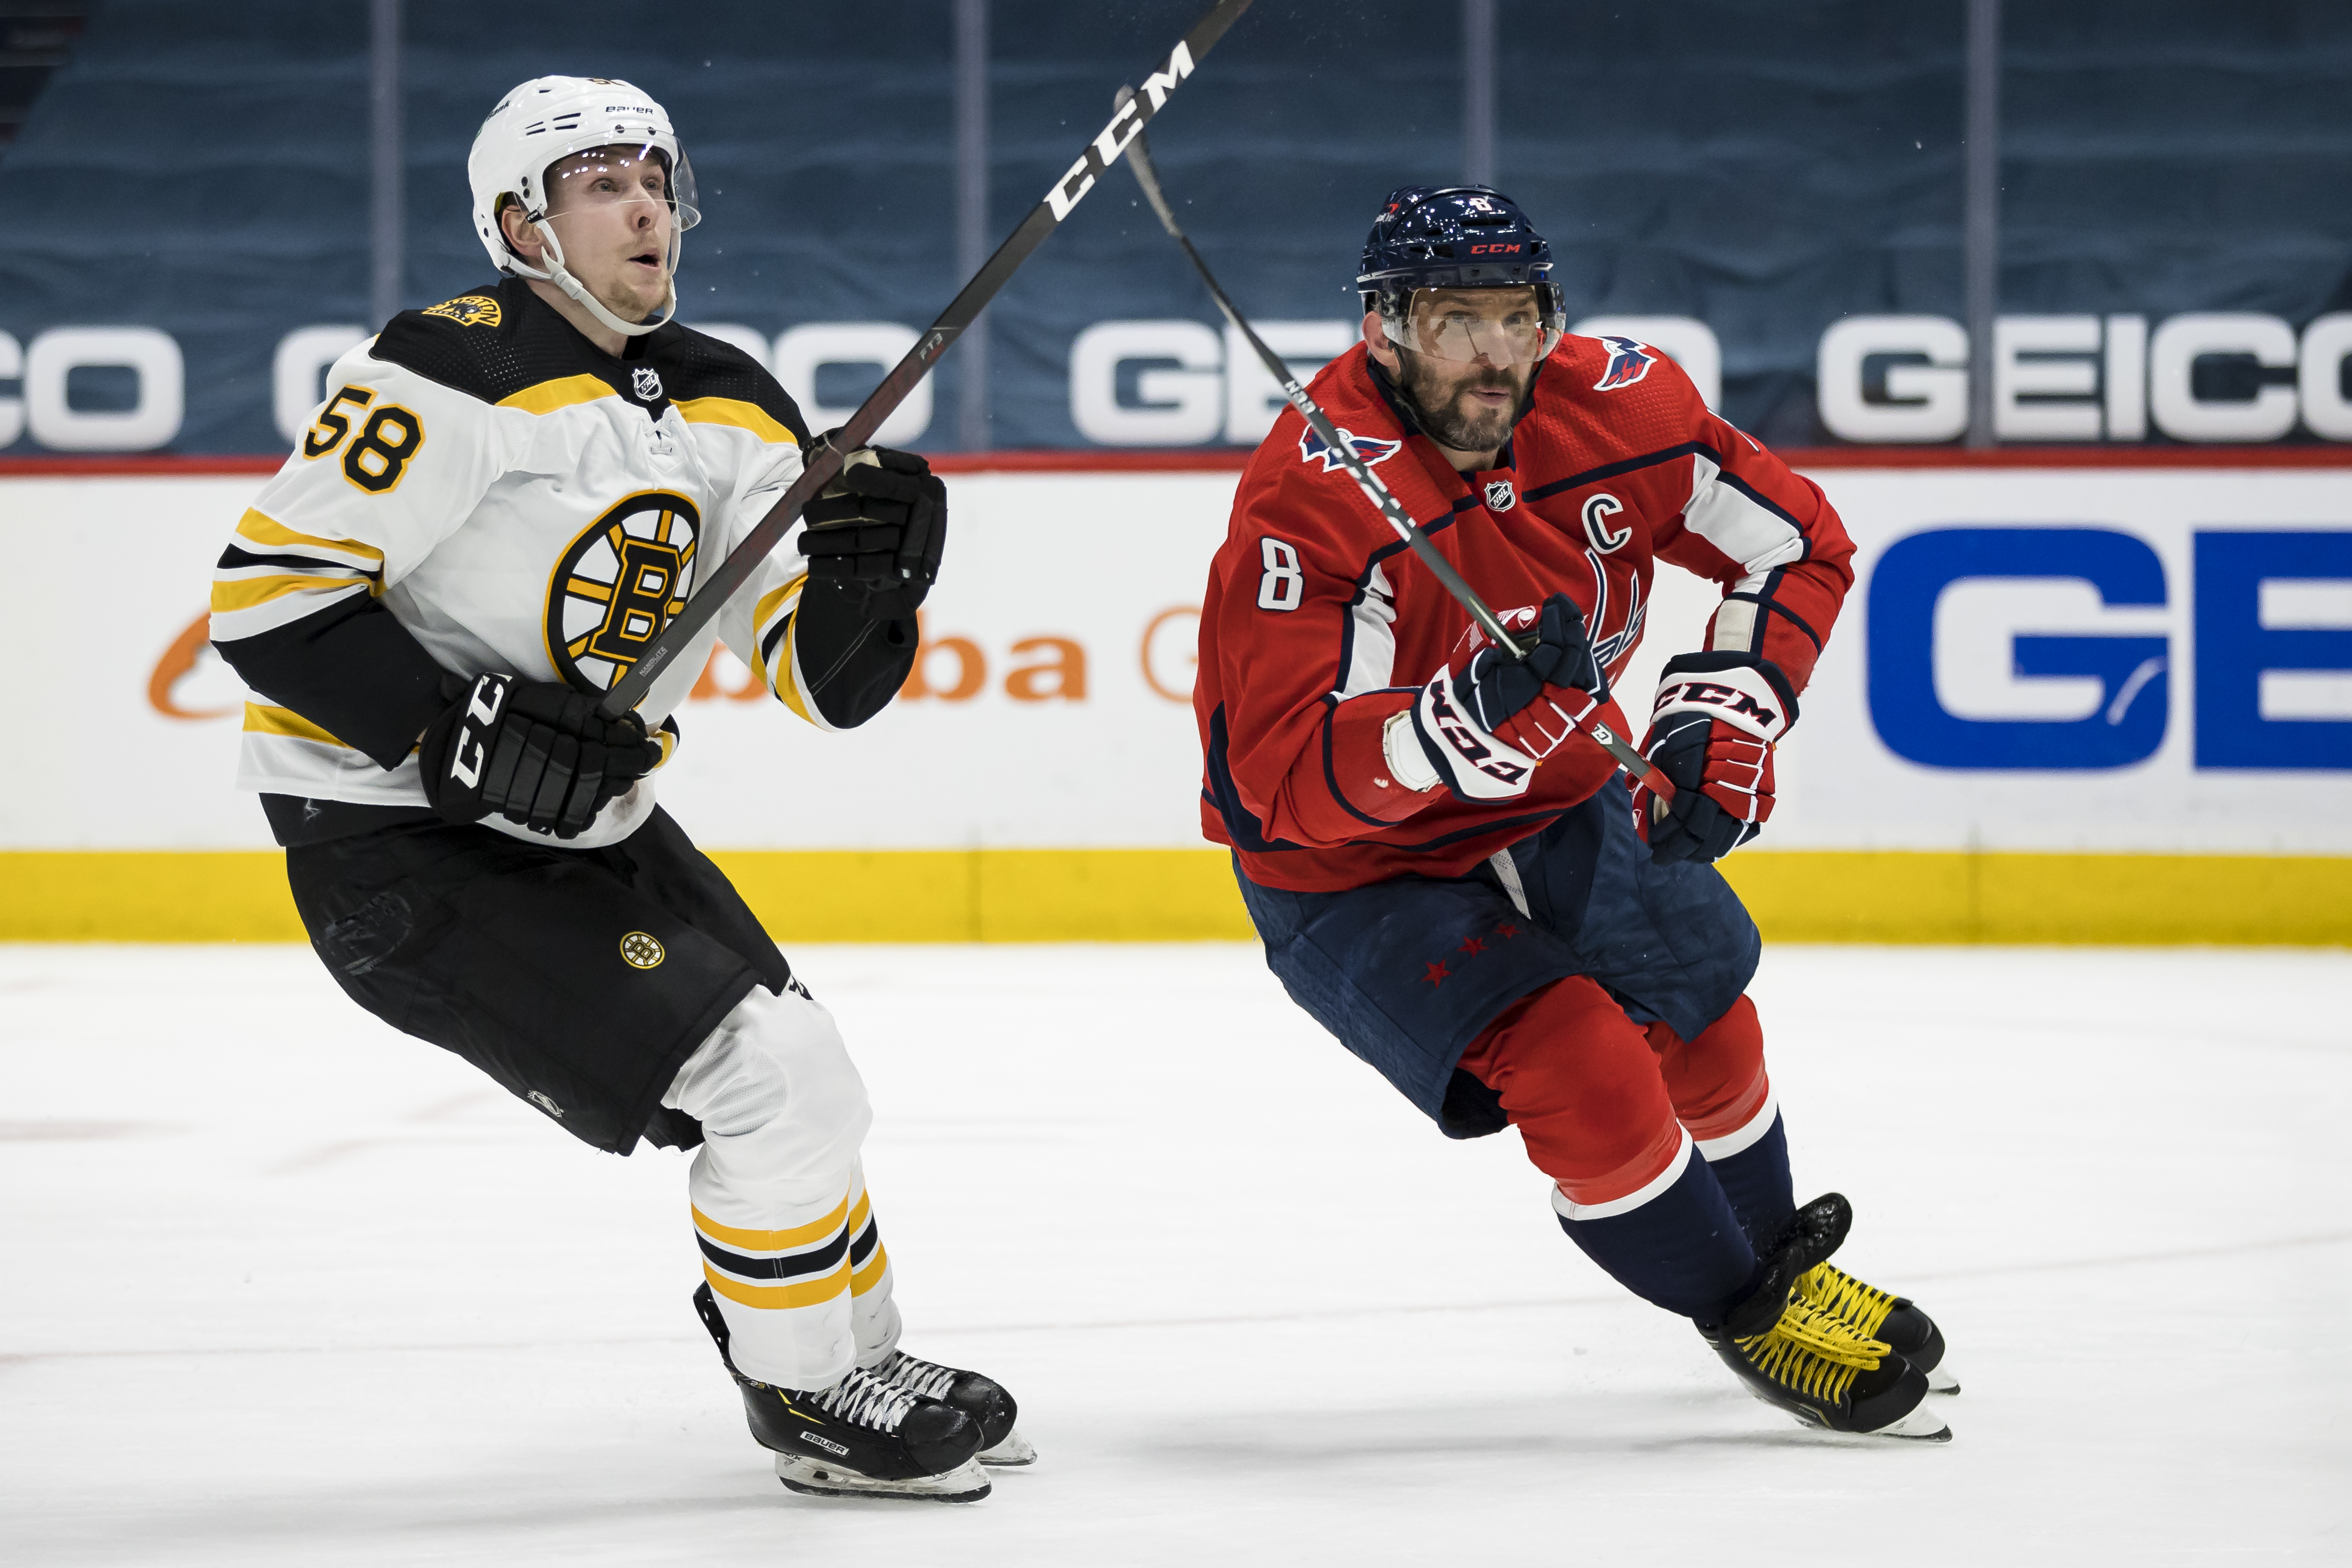 Alex Ovechkin #8 of the Washington Capitals and Urho Vaakanainen #58 of the Boston Bruins skate for a loose puck during the second period of the game at Capital One Arena on May 11, 2021 in Washington, DC.